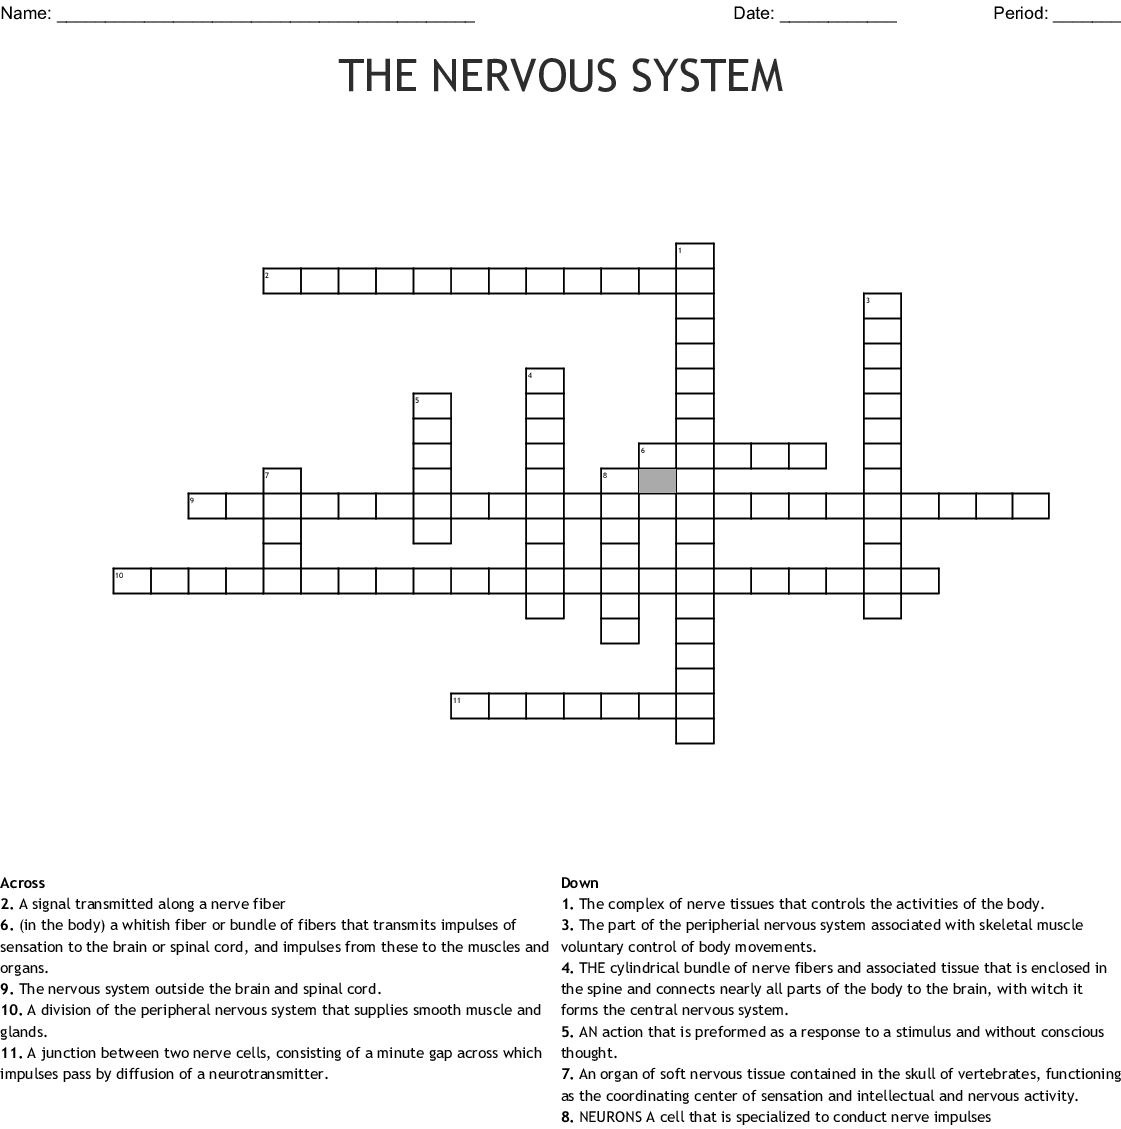 The nervous system Crossword - WordMint